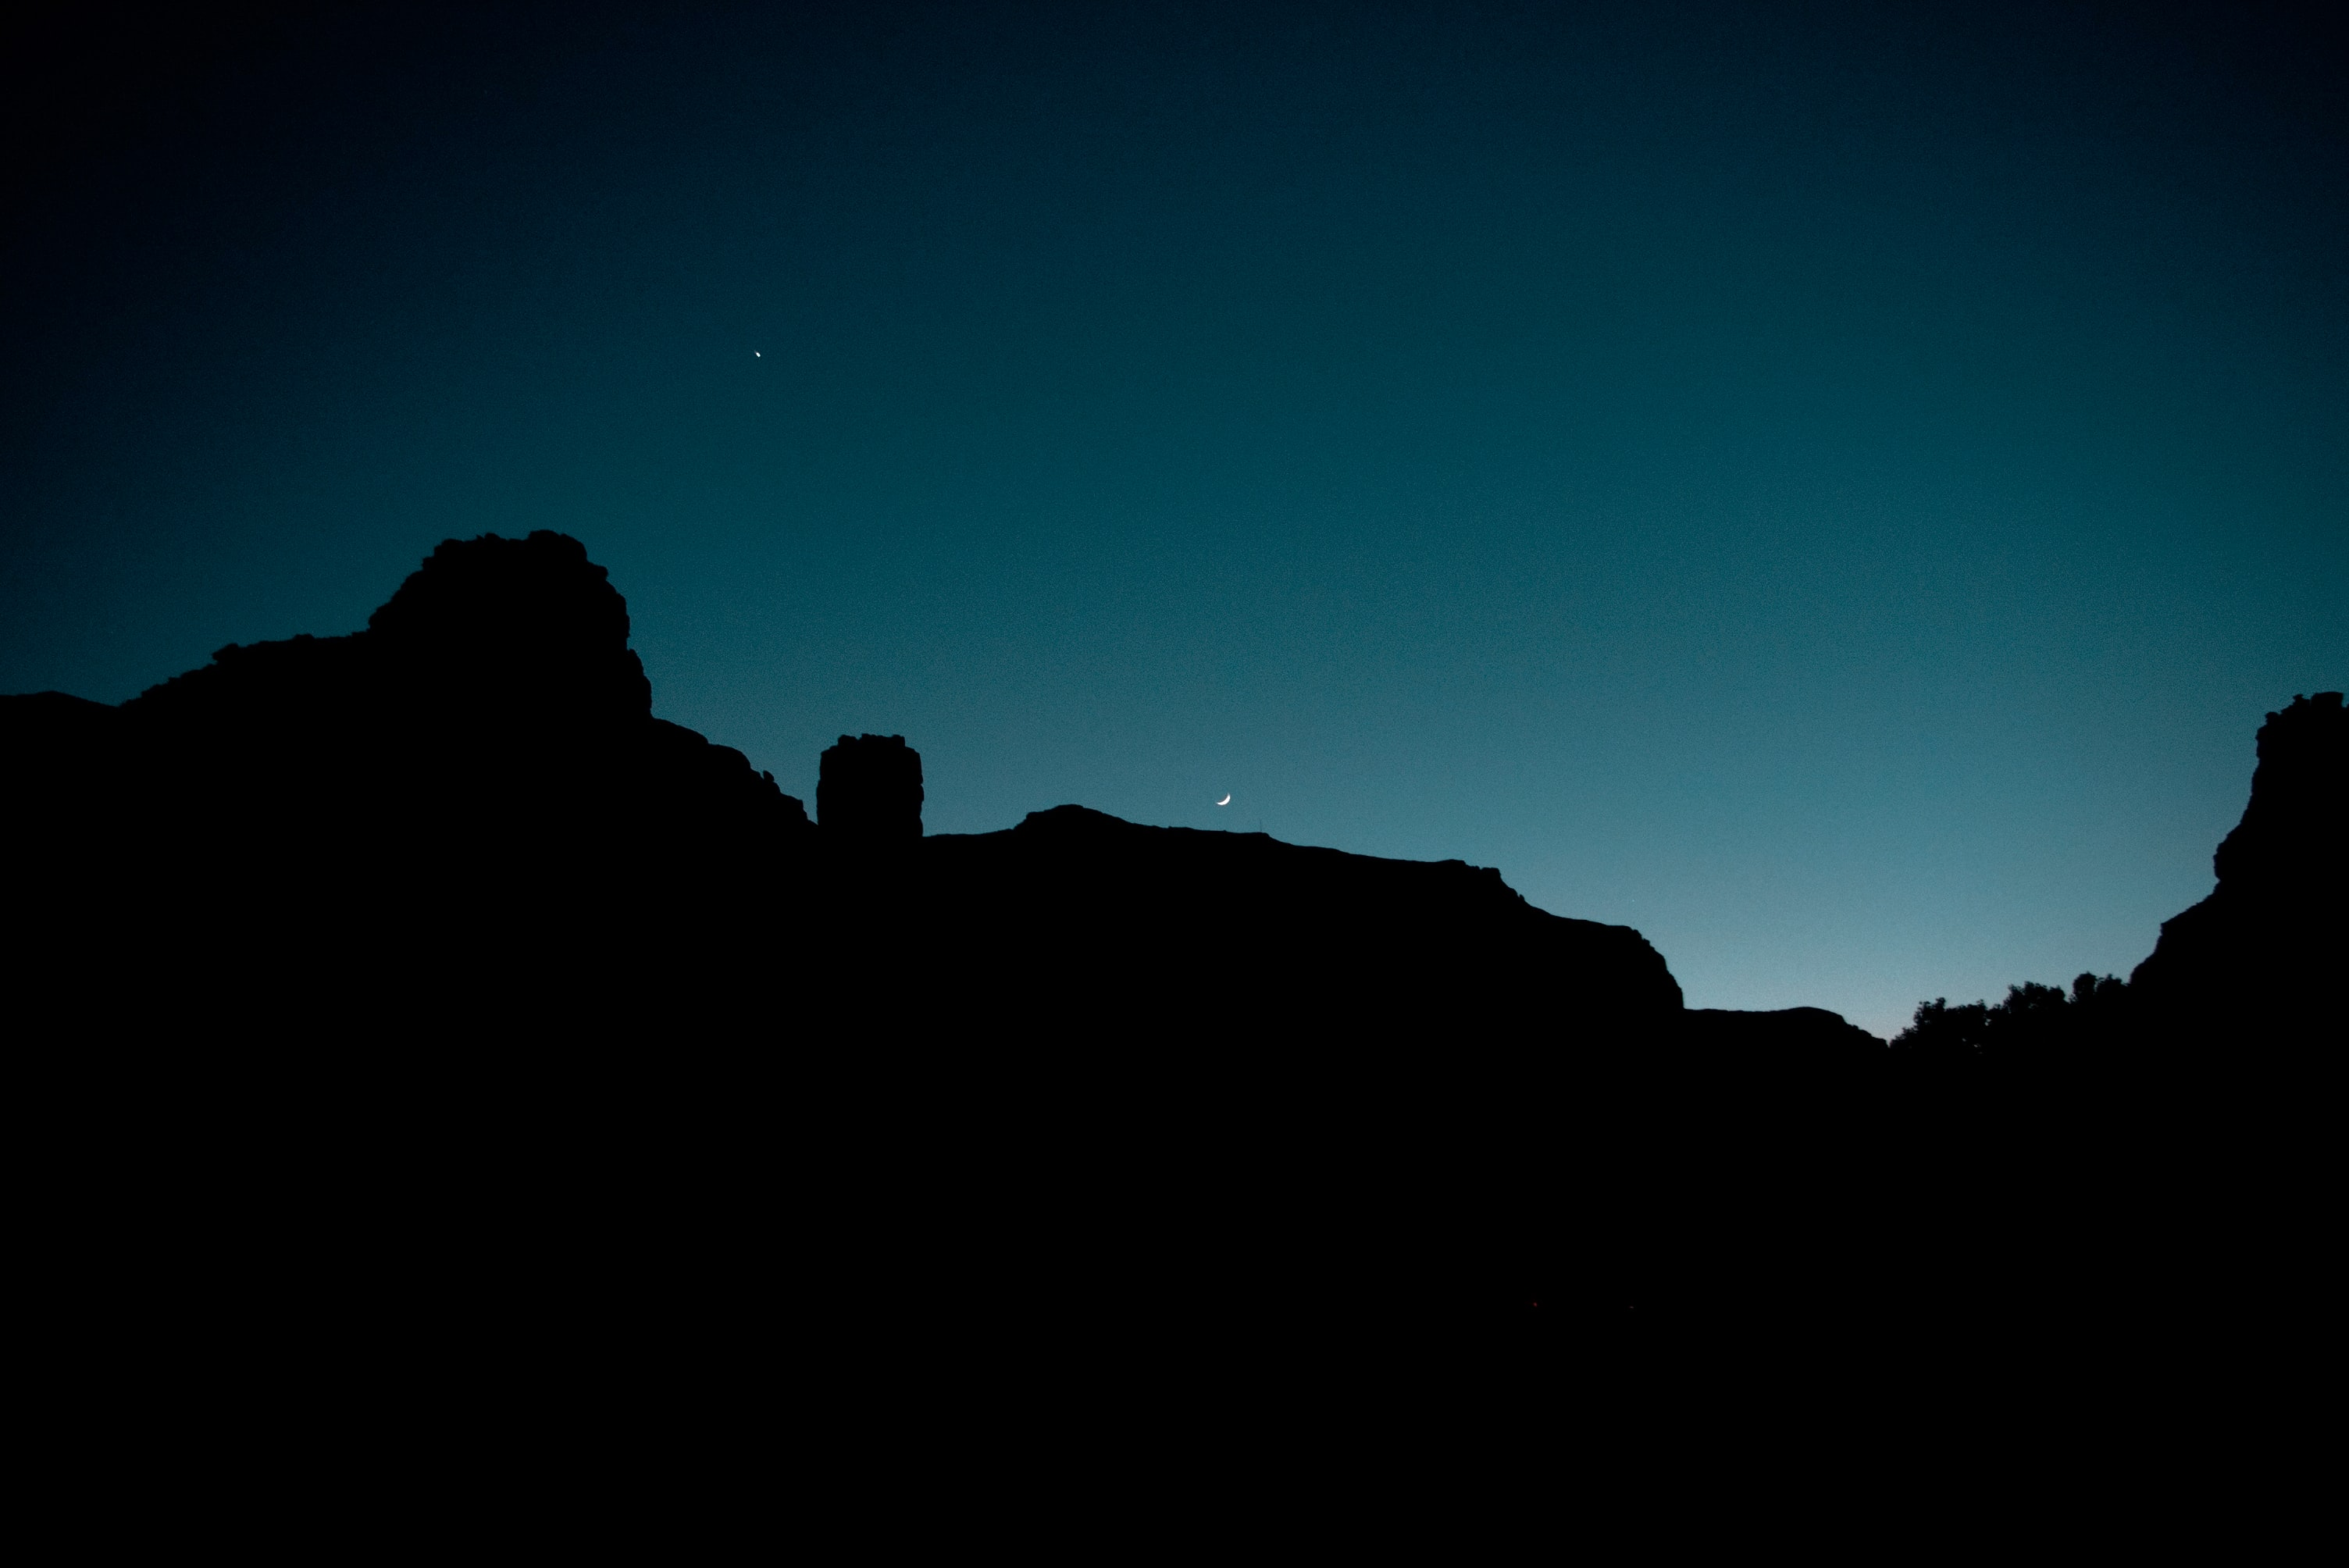 silhouette of mountains under clear sky